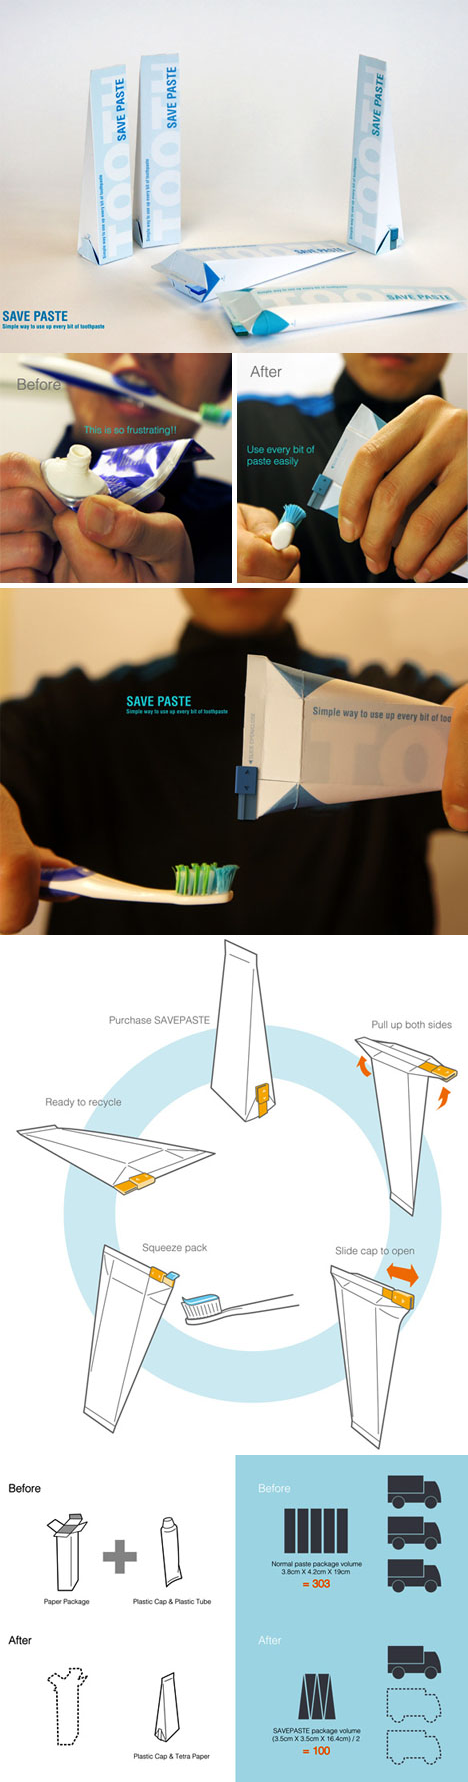 15. Save Paste: waste-free toothpaste